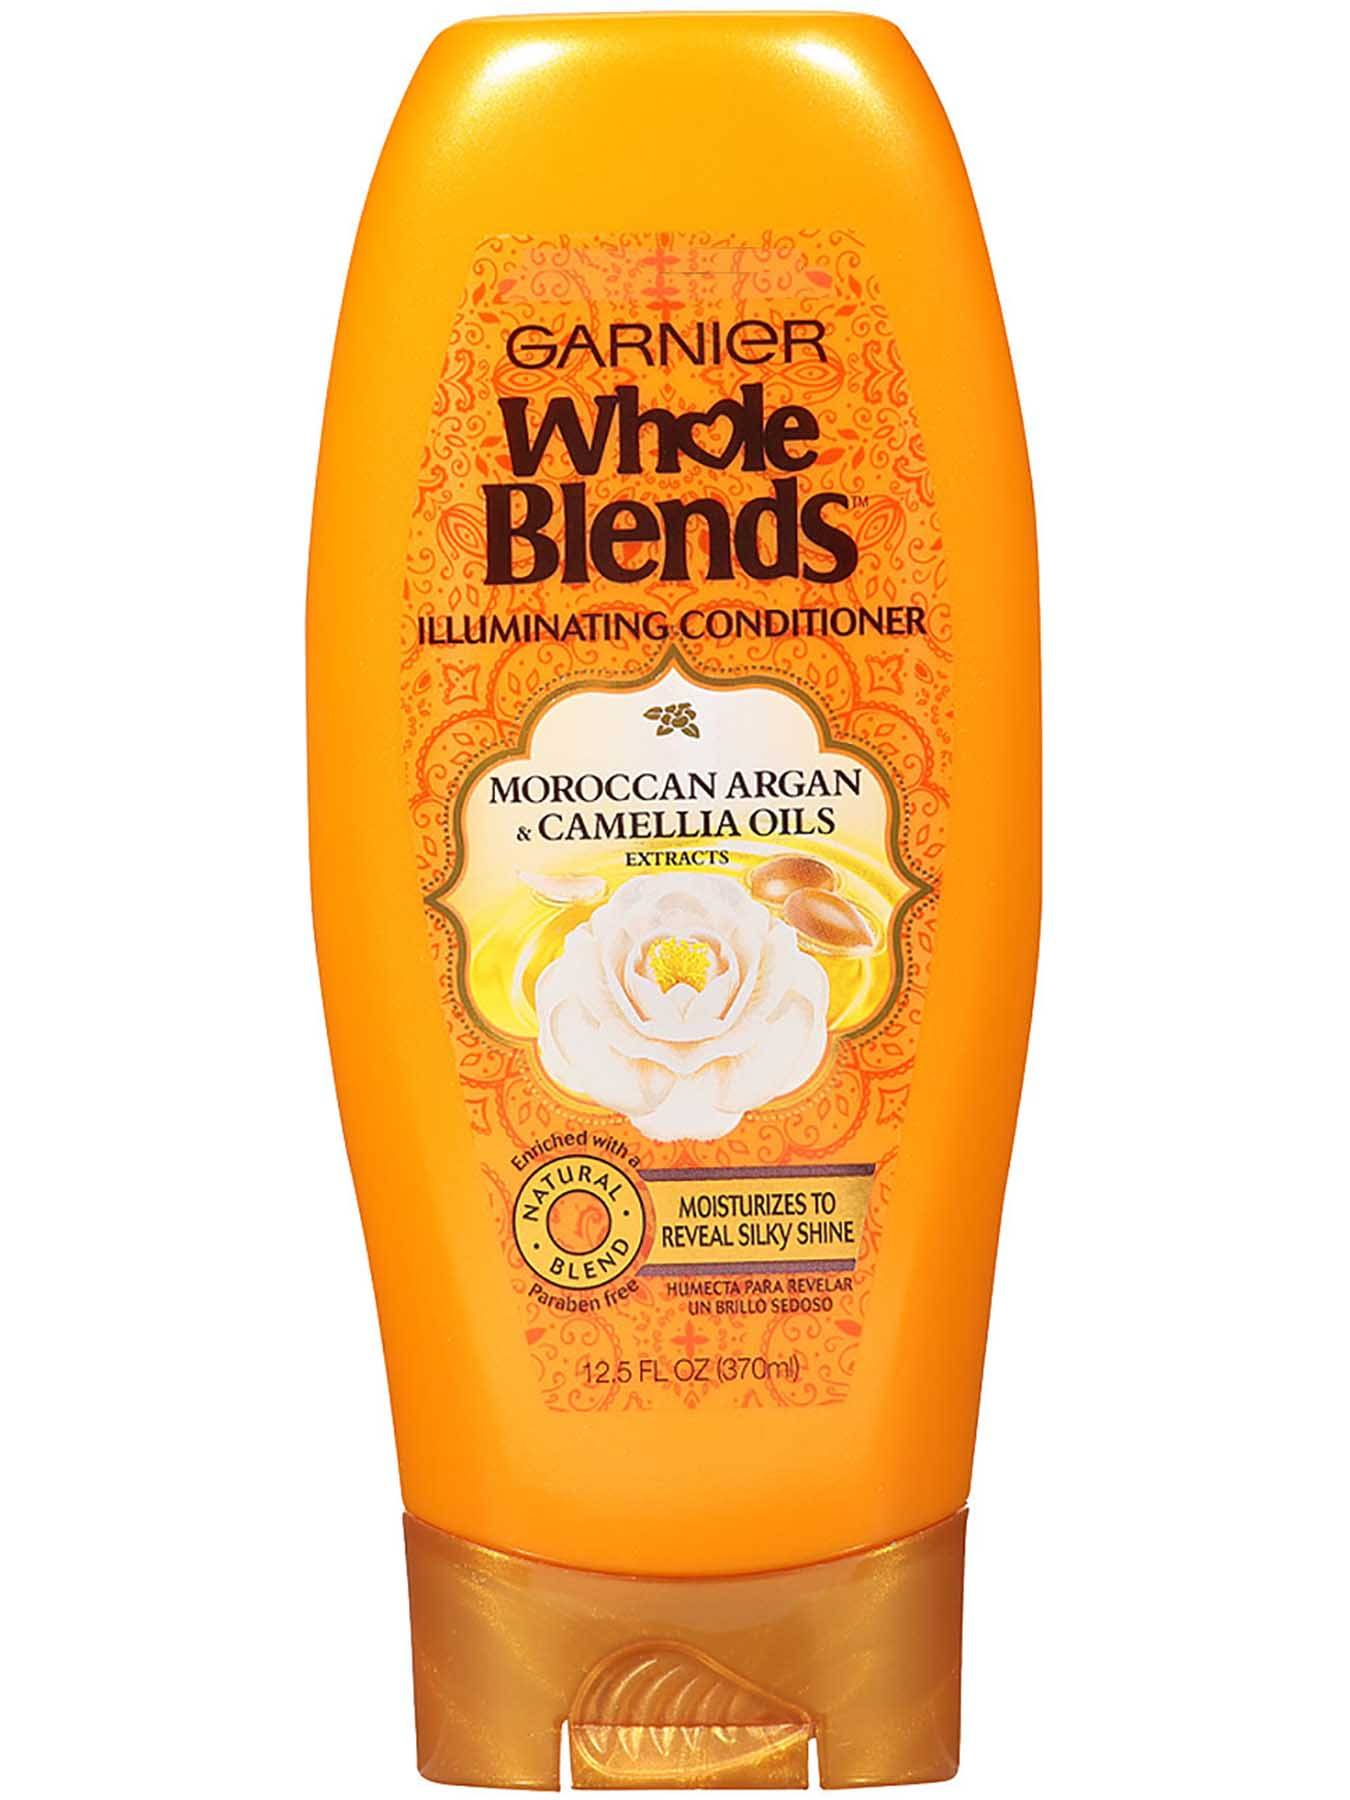 Garnier Whole Blends Illuminating Conditioner Moroccan Argan Camellia Oils Extracts Front Of Bottle